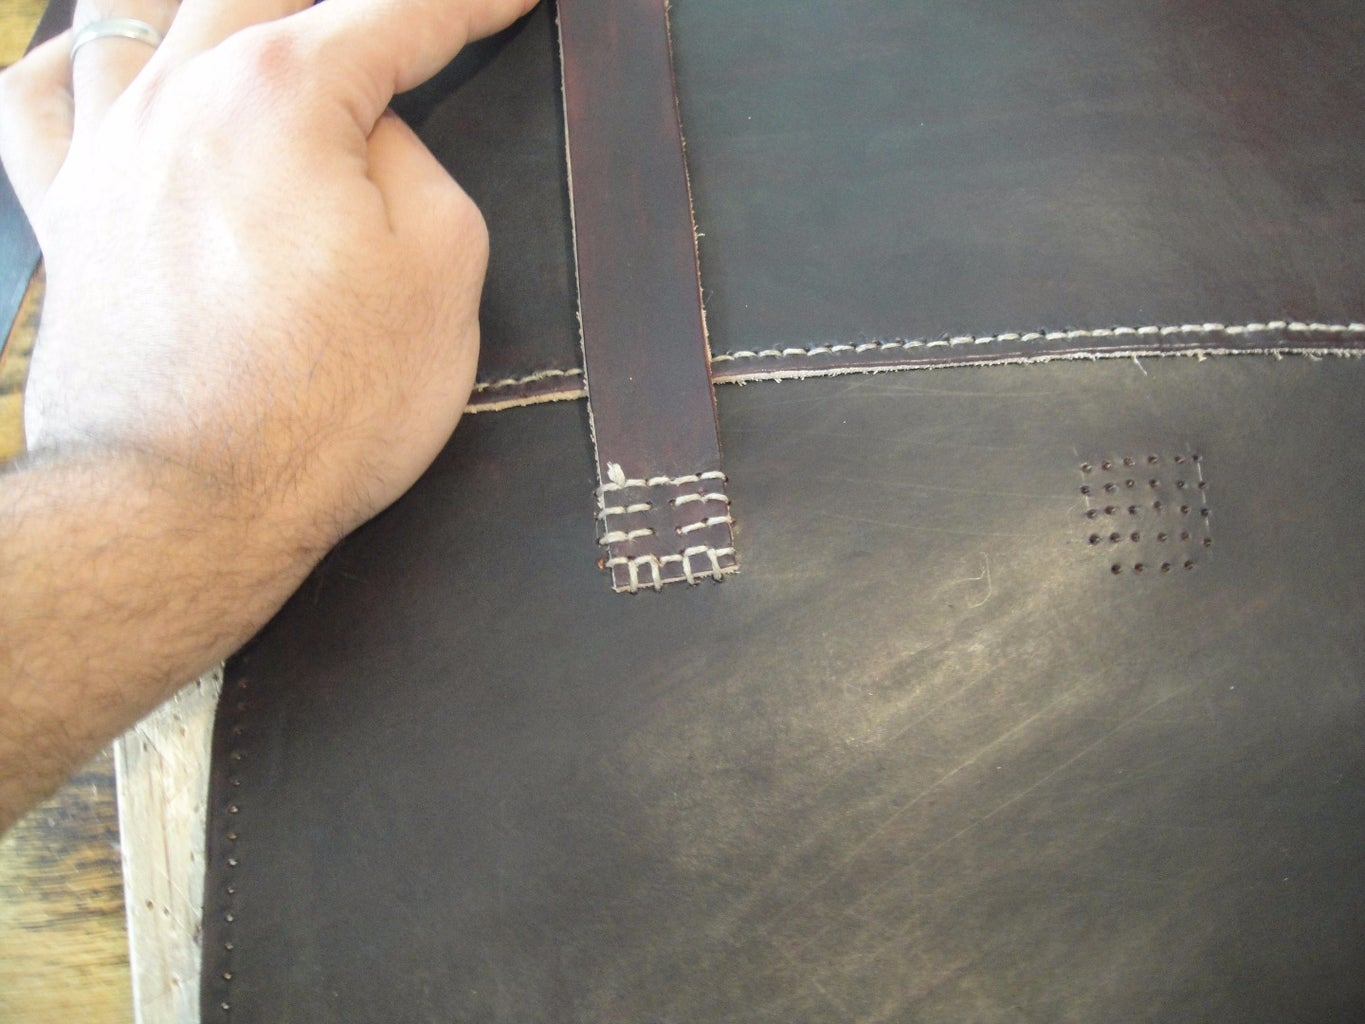 Sewing on the Lid and Straps